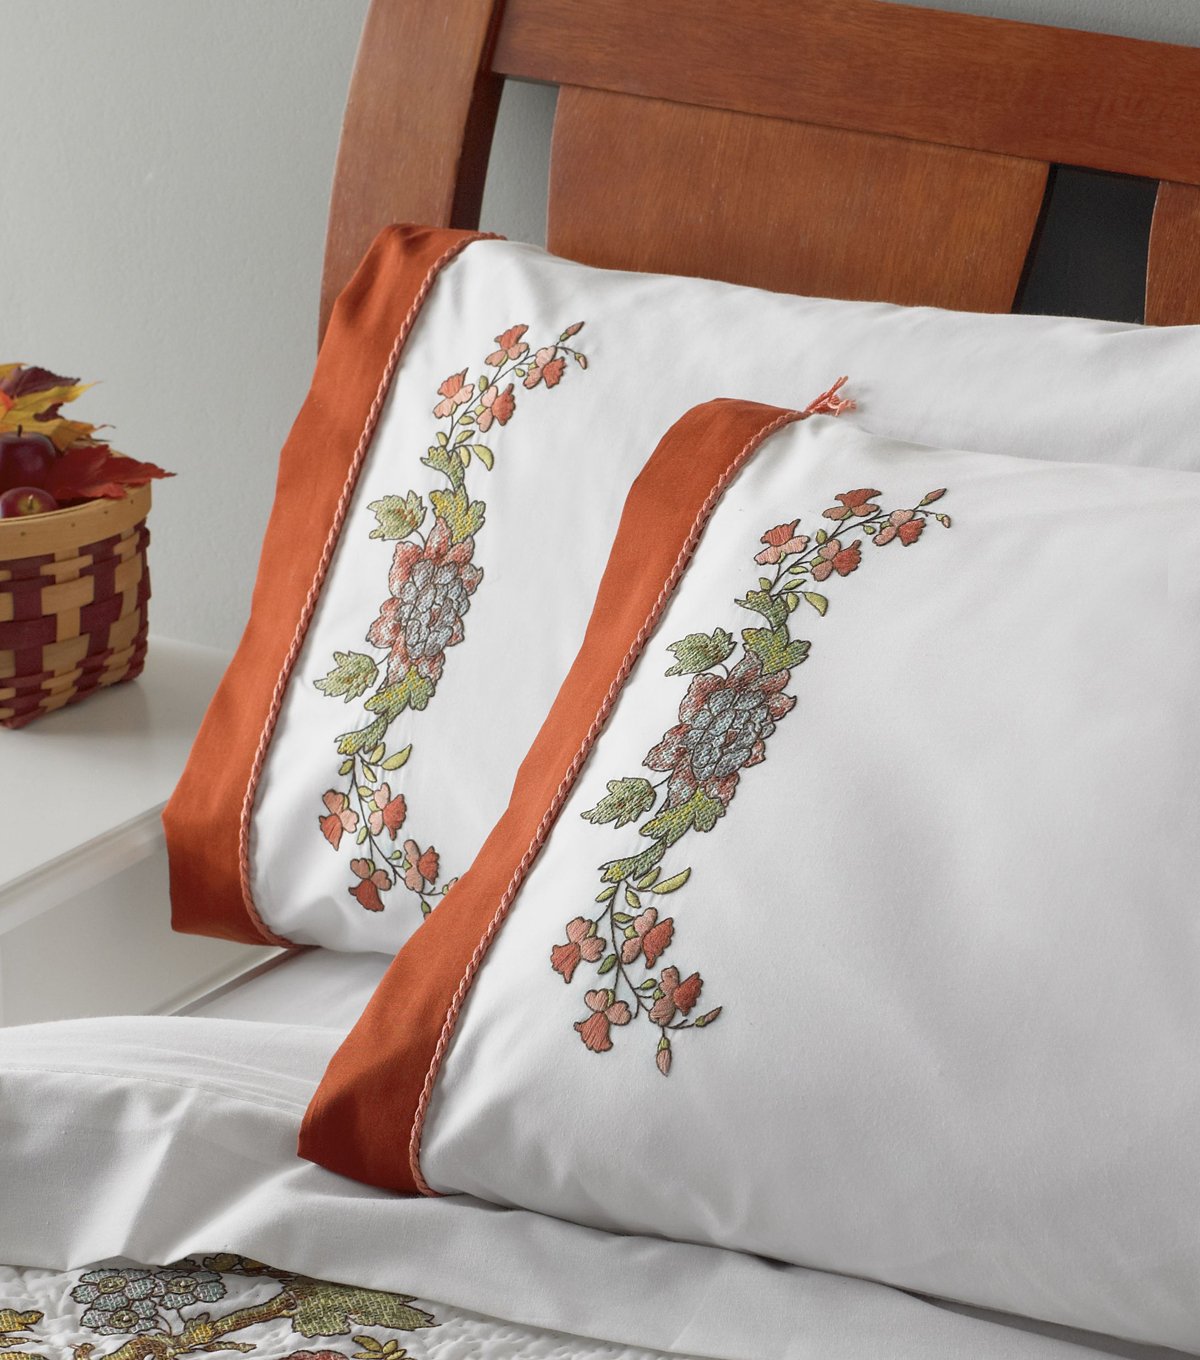 Bucilla Waverly Charleston Chip Stamped Embroidery Pillowcase